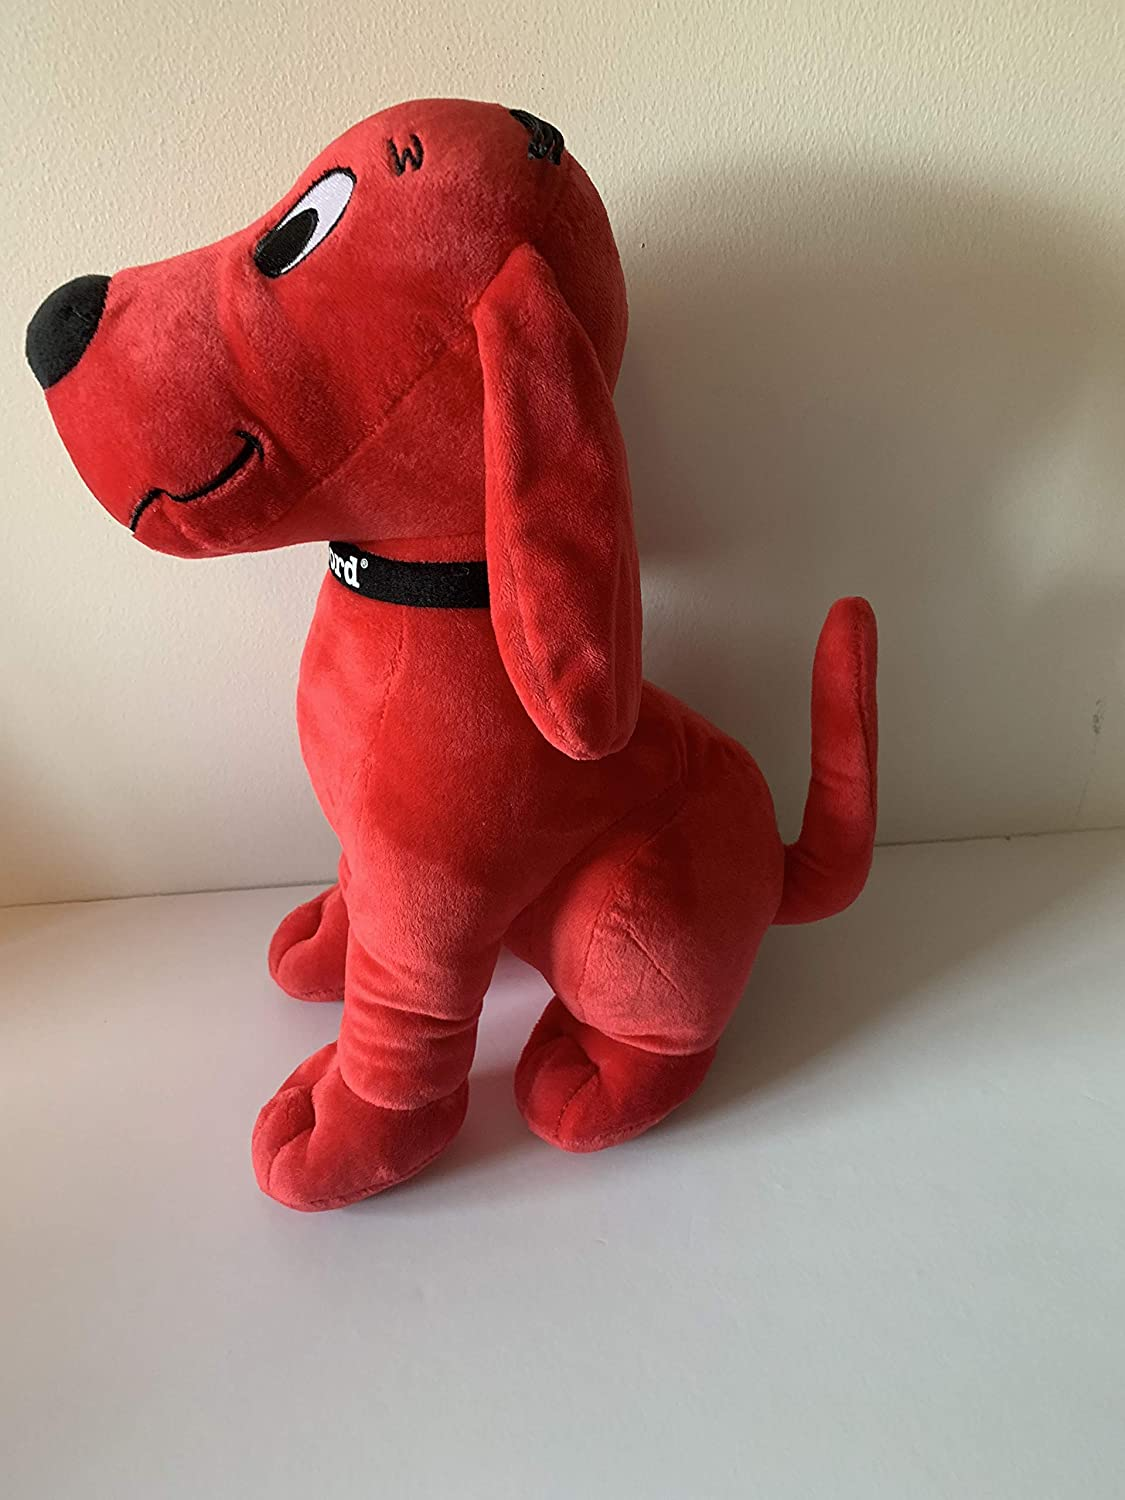 sensory toy 3 lbs Weighted stuffed animal Clifford the dog washable weighted buddy